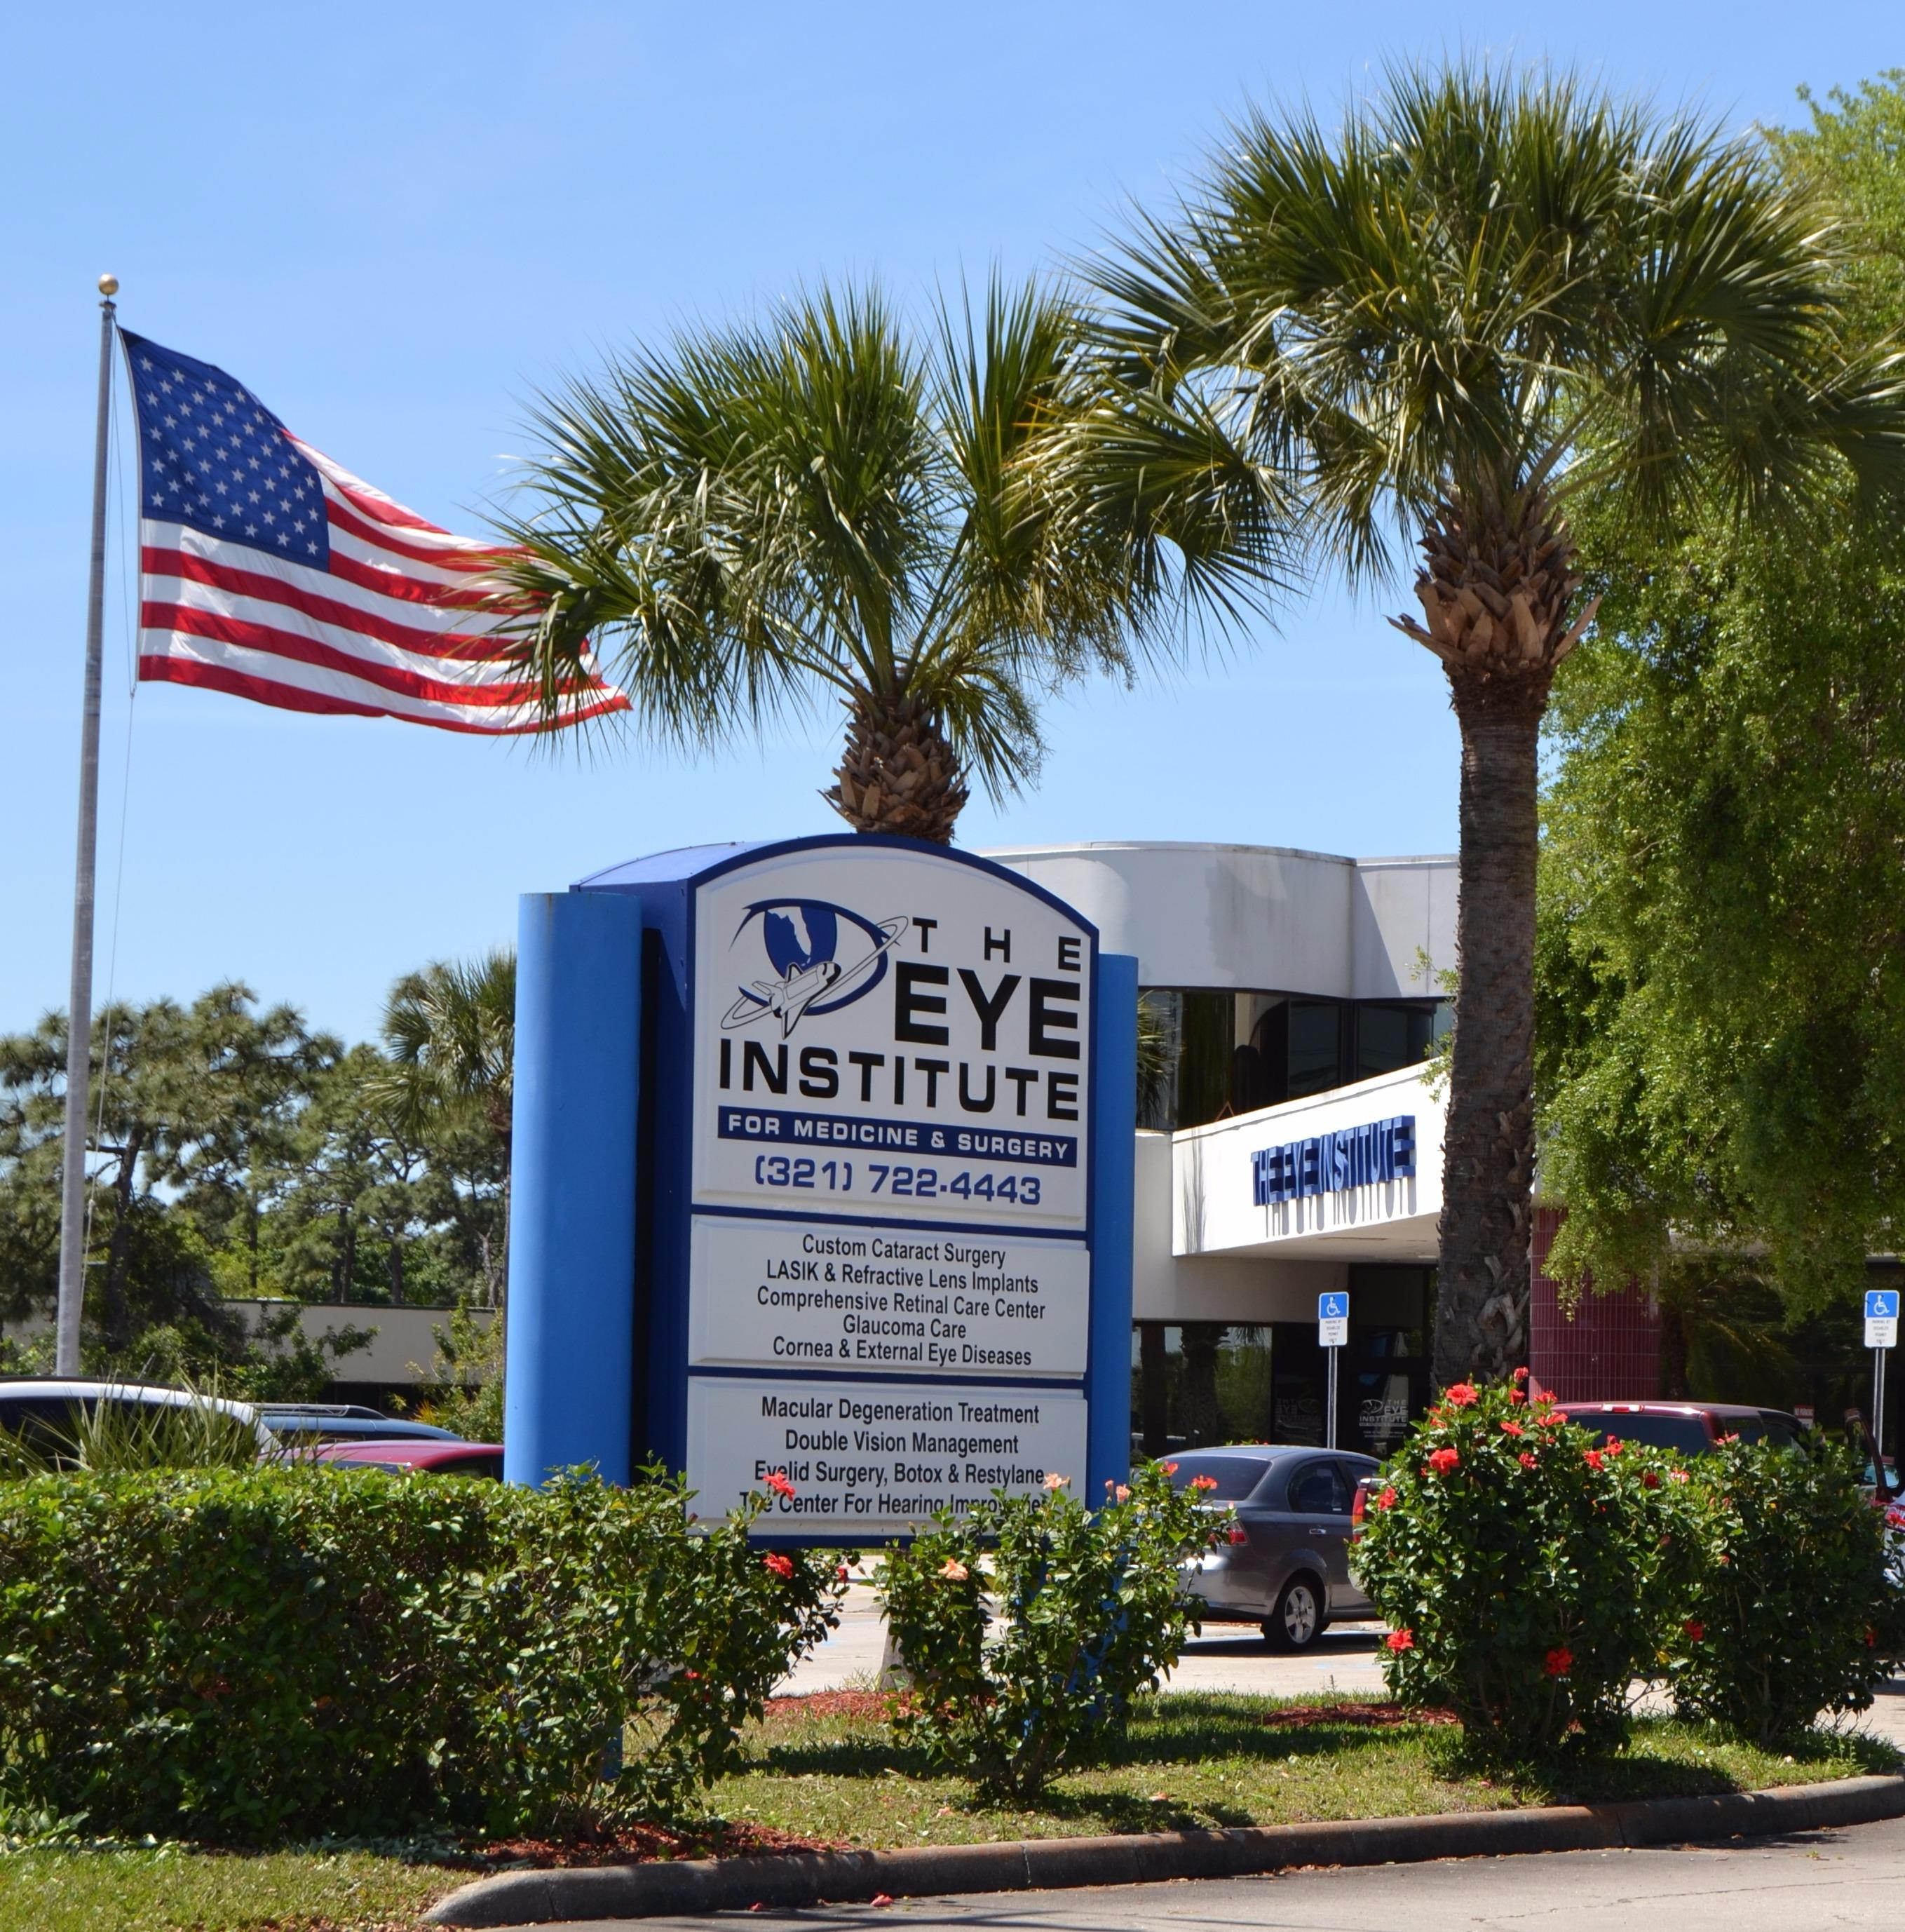 The Eye Institute for Medicine & Surgery-MLB image 1